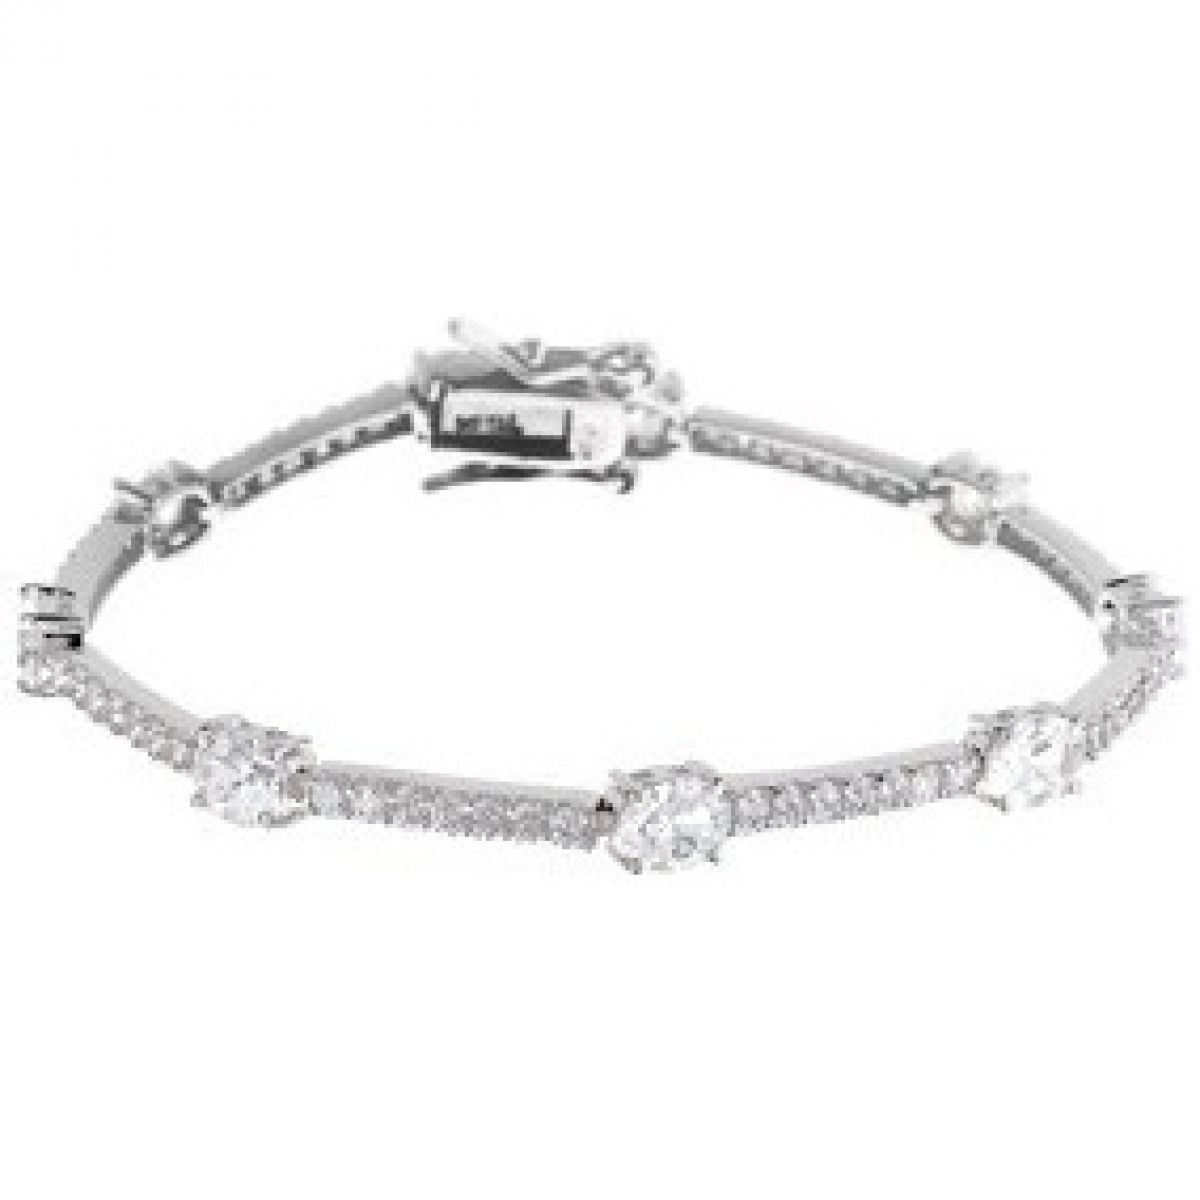 silver cz our a marquise alternative diamond graduated in sterling and rita bridal bracelet laine bracelets cubic featured zirconia jewelry is the thomas